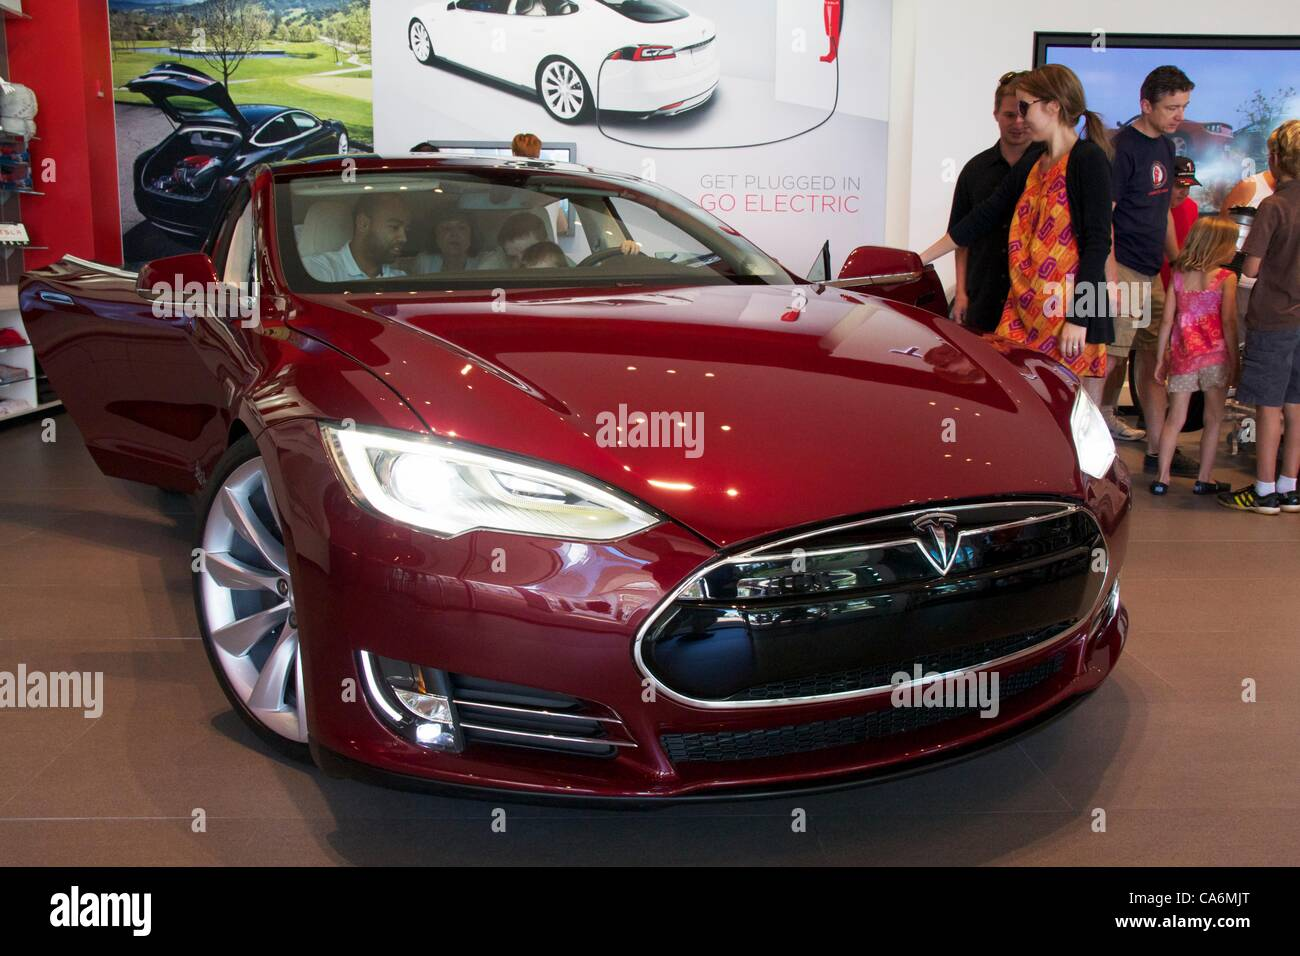 17, June, 2012, Oak Brook, Illinois, USA. Prospective customers consider the new Tesla Motors Model S. The Model - Stock Image